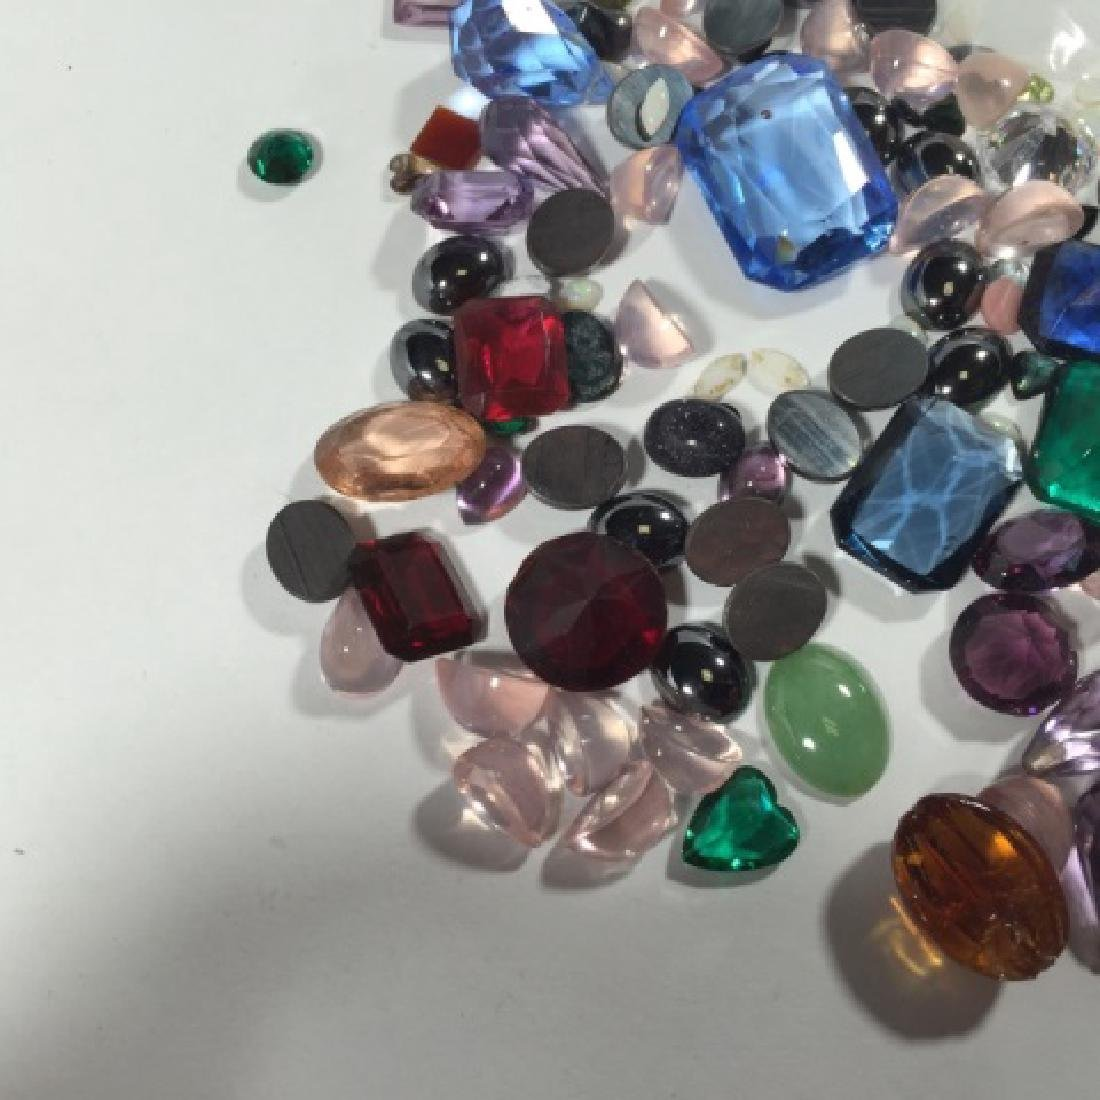 Assorted Loose Stones - Opal, Ruby, Amethyst Etc - 2